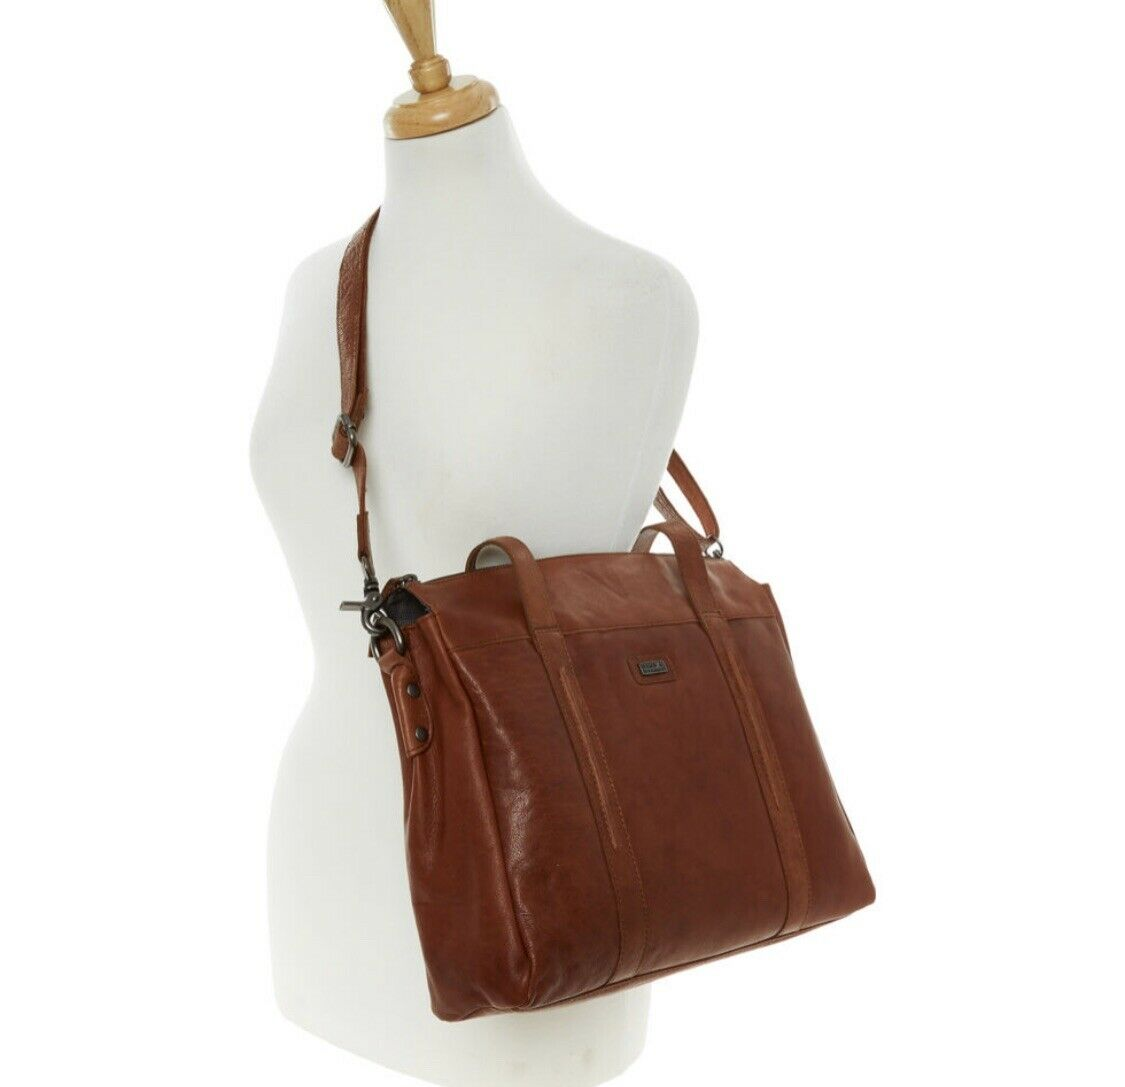 Spikes & Sparrow Bag Tanned Leather Business Cross Body / Shoulder RRP